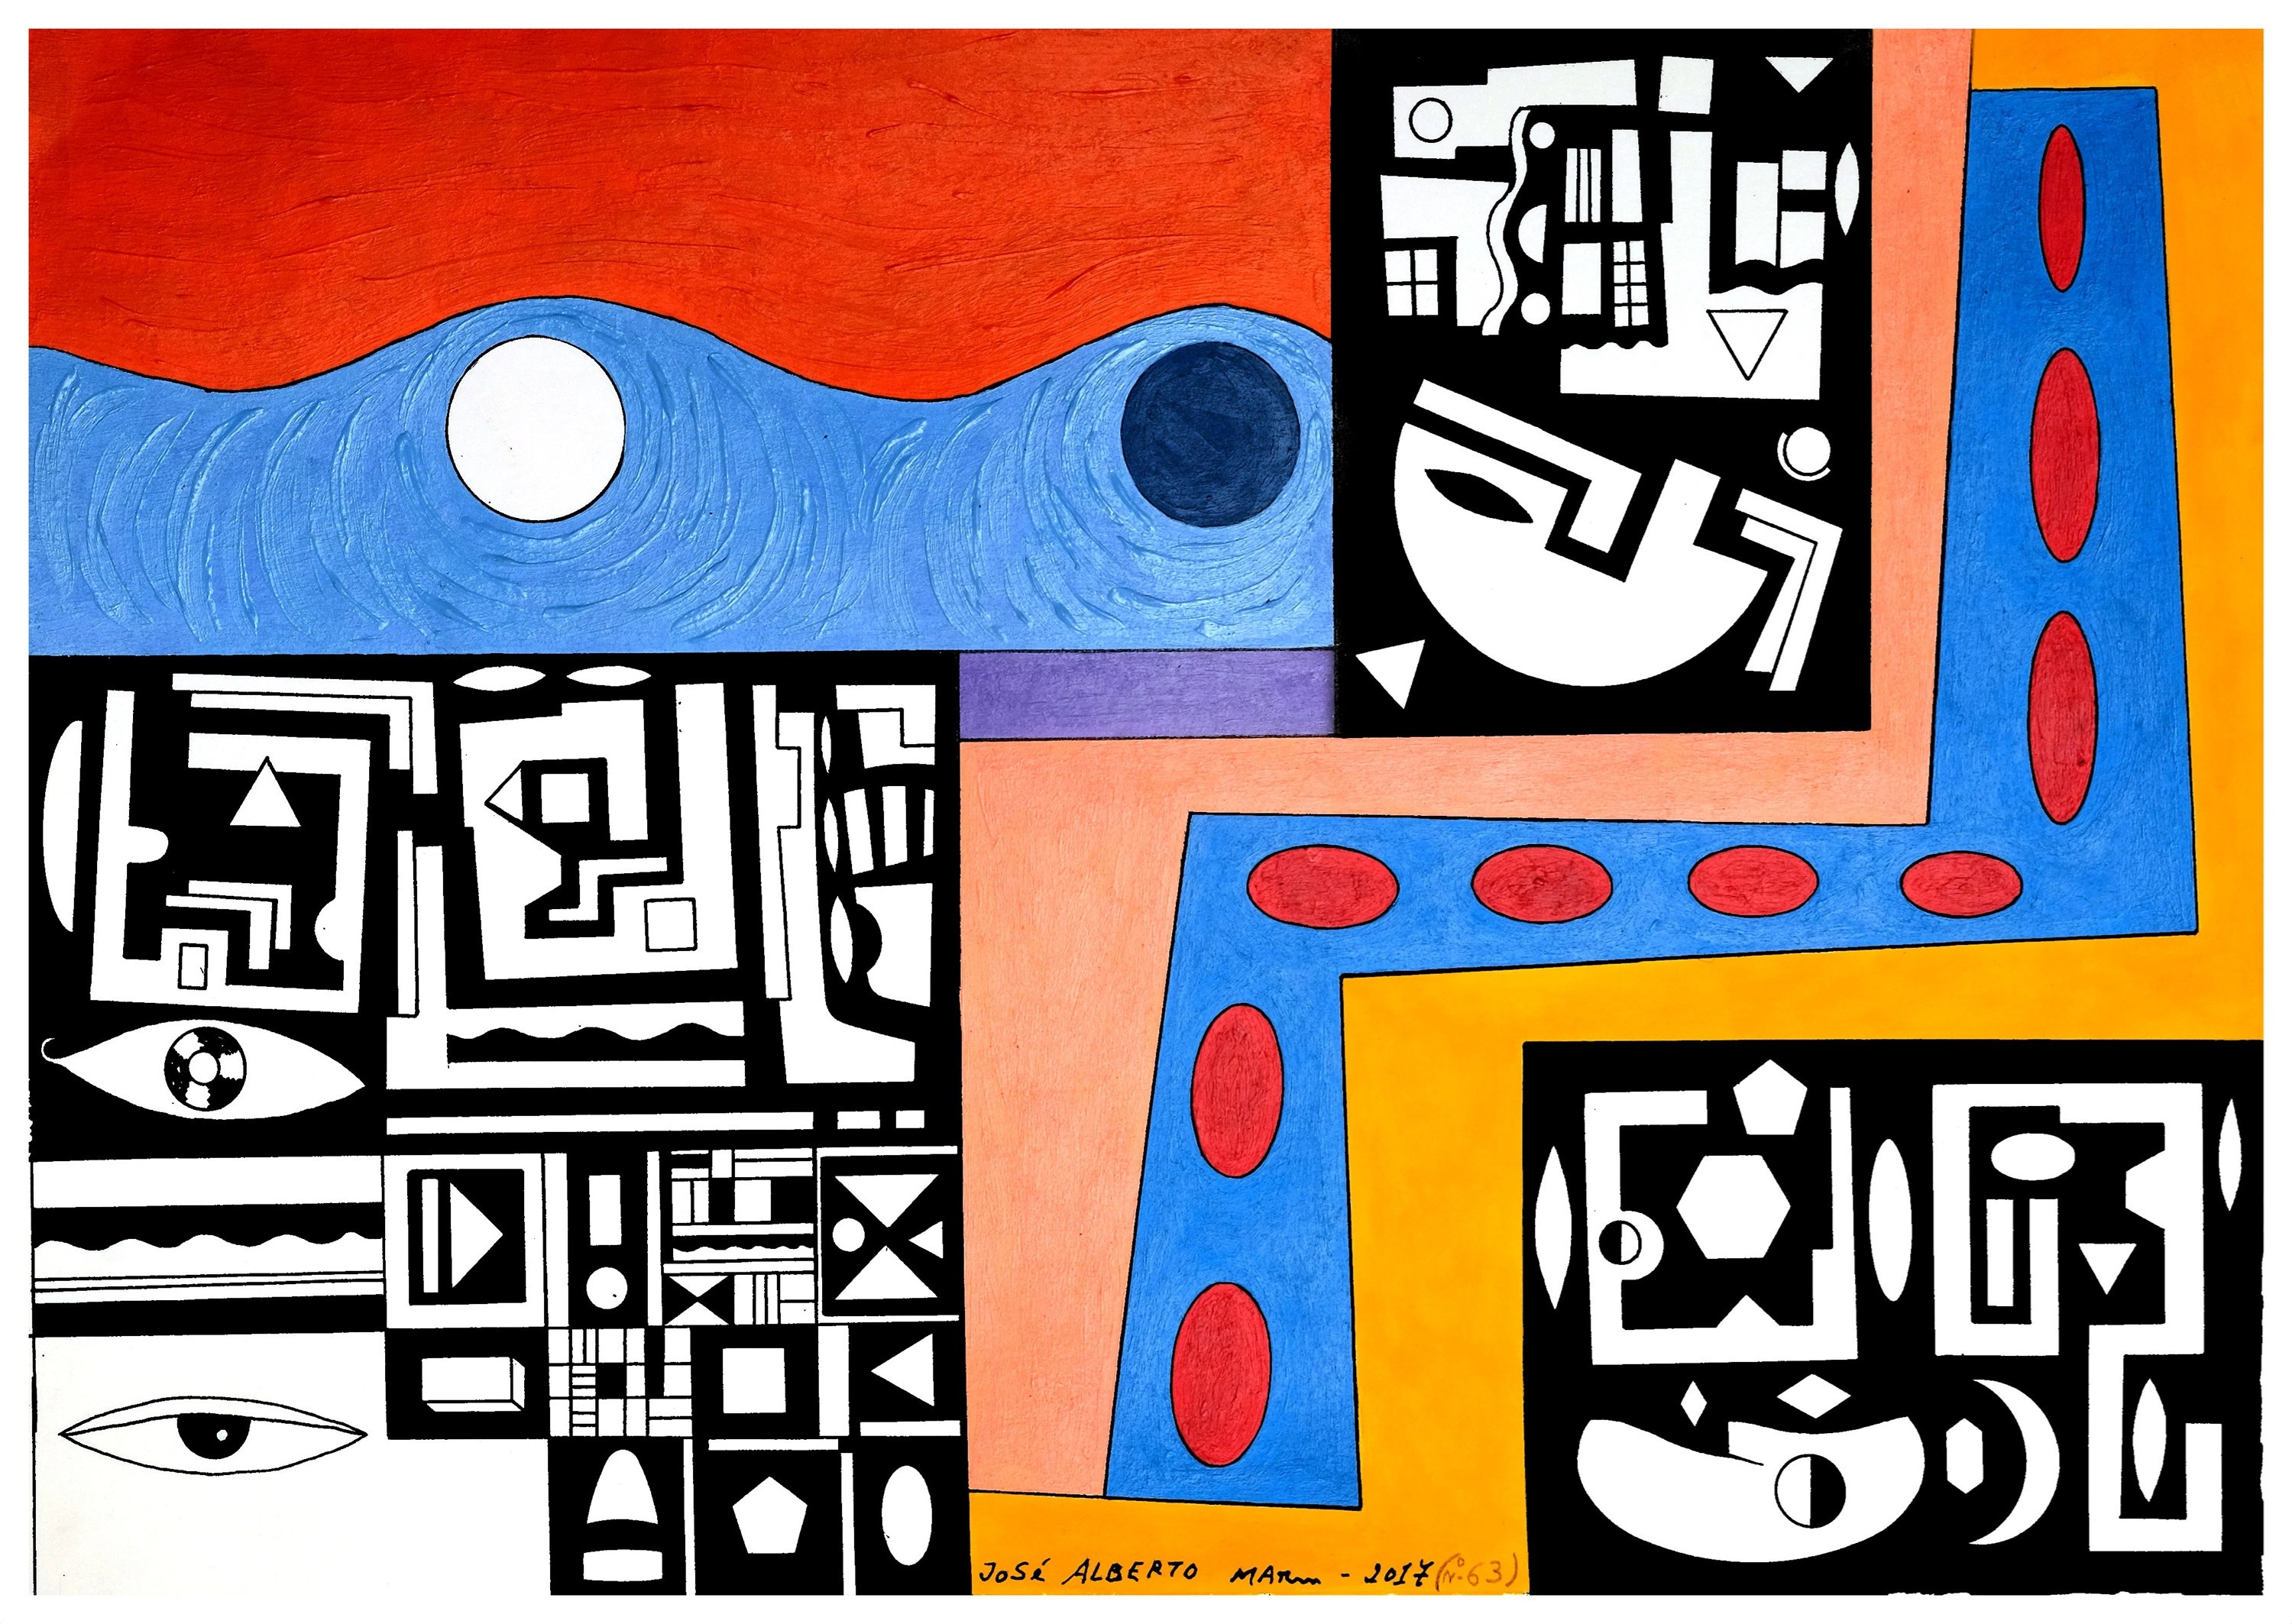 Série: pequenas sabedorias. Series: small wisdoms (Nº63), original Geometric Acrylic Painting by José Alberto Mar